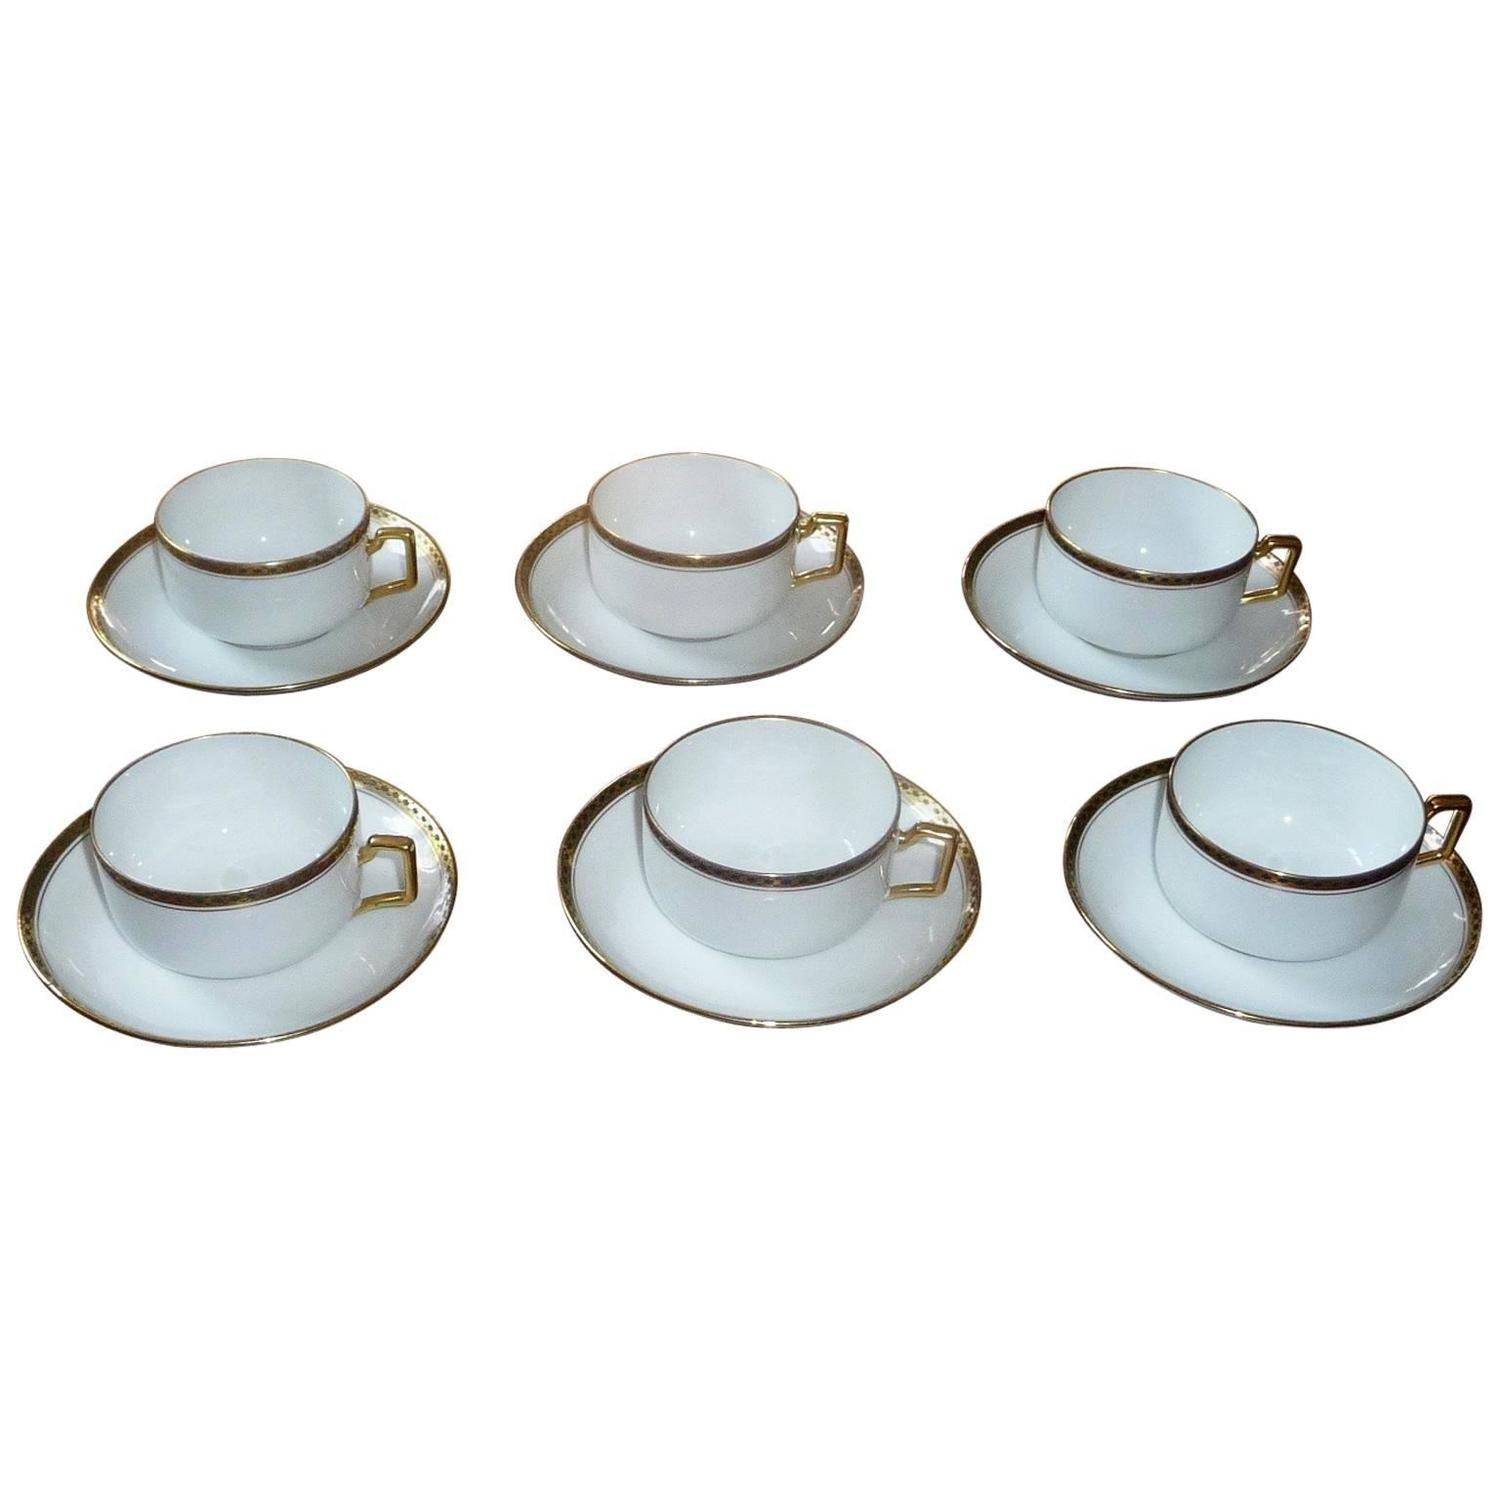 Fine Limoges Porcelain Coffee Service Set Of Six Cups By Legrand, France